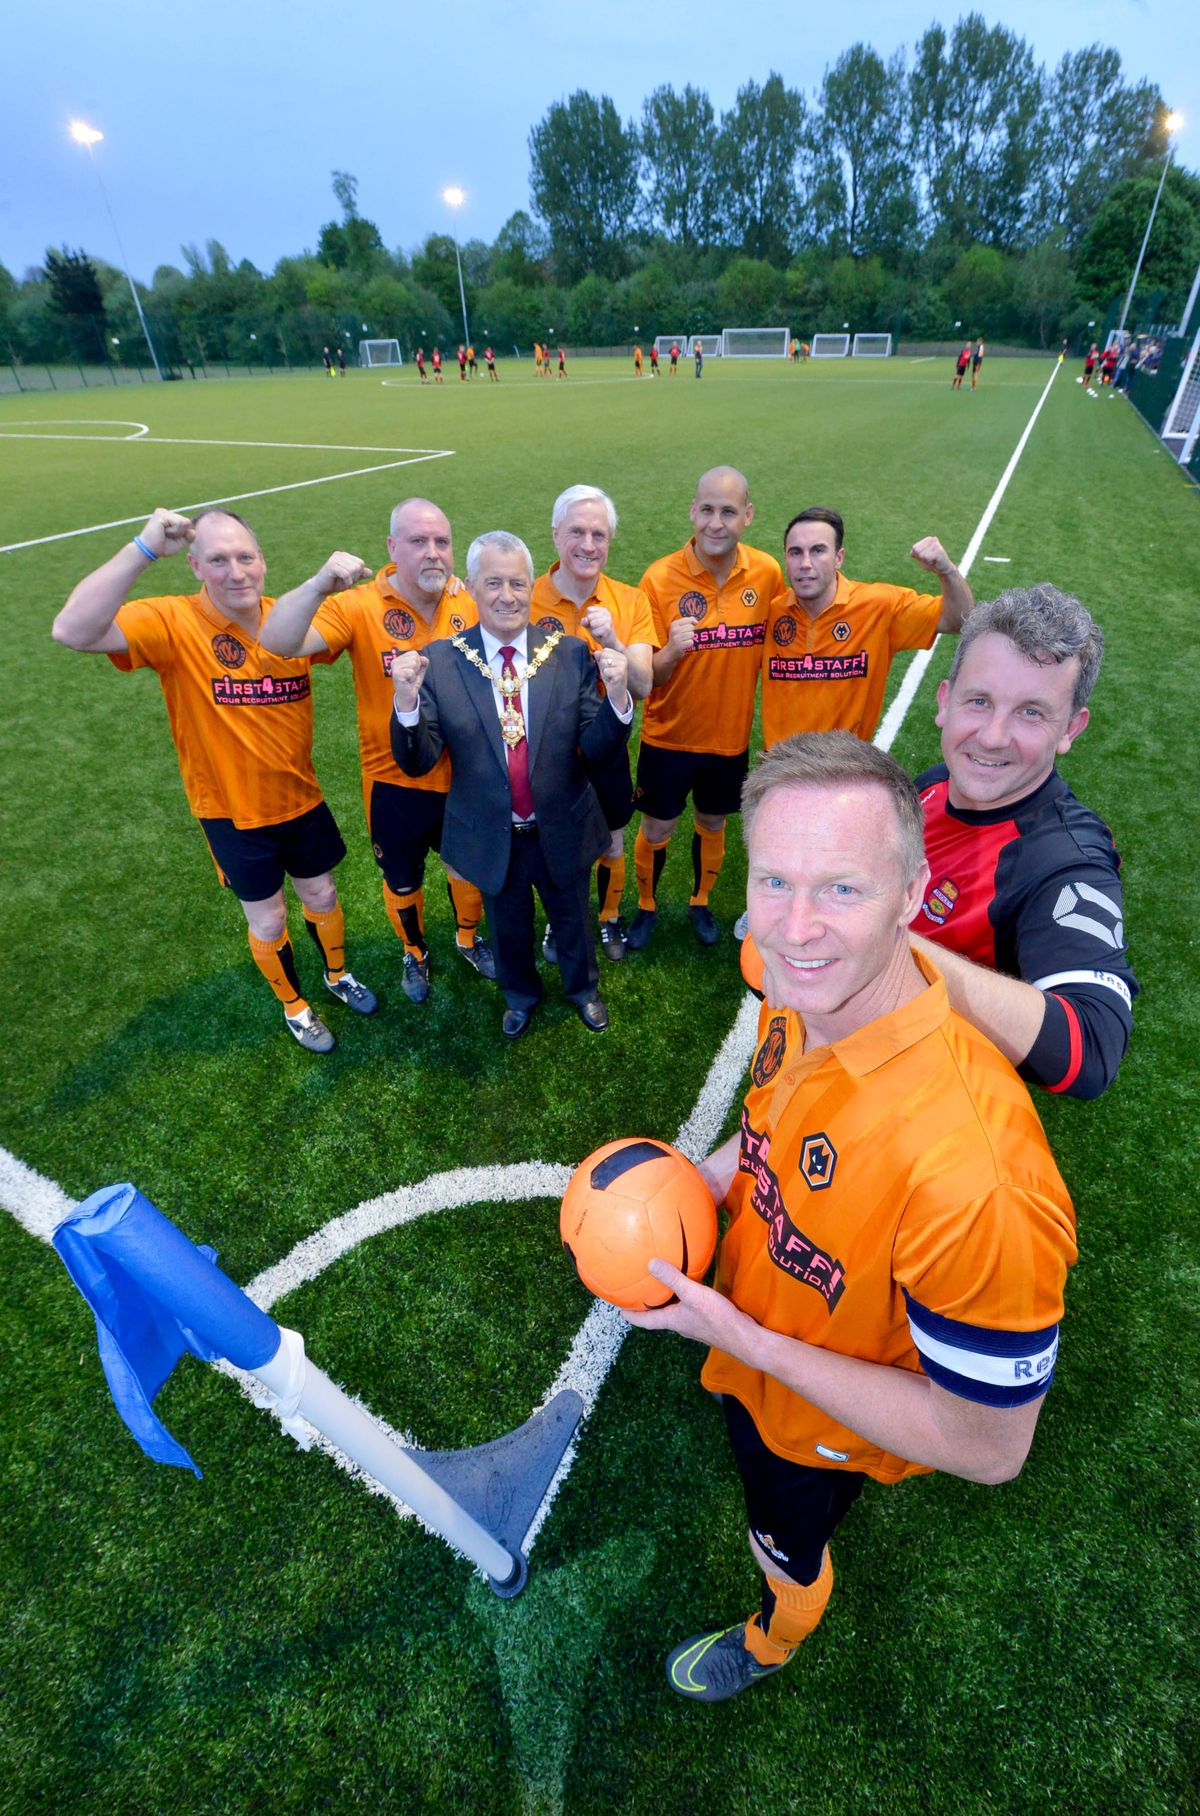 At the front are captains: Jody Craddock and Dudley's: Pete Thompson. Then at the back is Mayor: Dave Tyler and Wolves players: Paul Jones, Colin Taylor, Mel Eves, Nigel Quasie and Shane Taylor